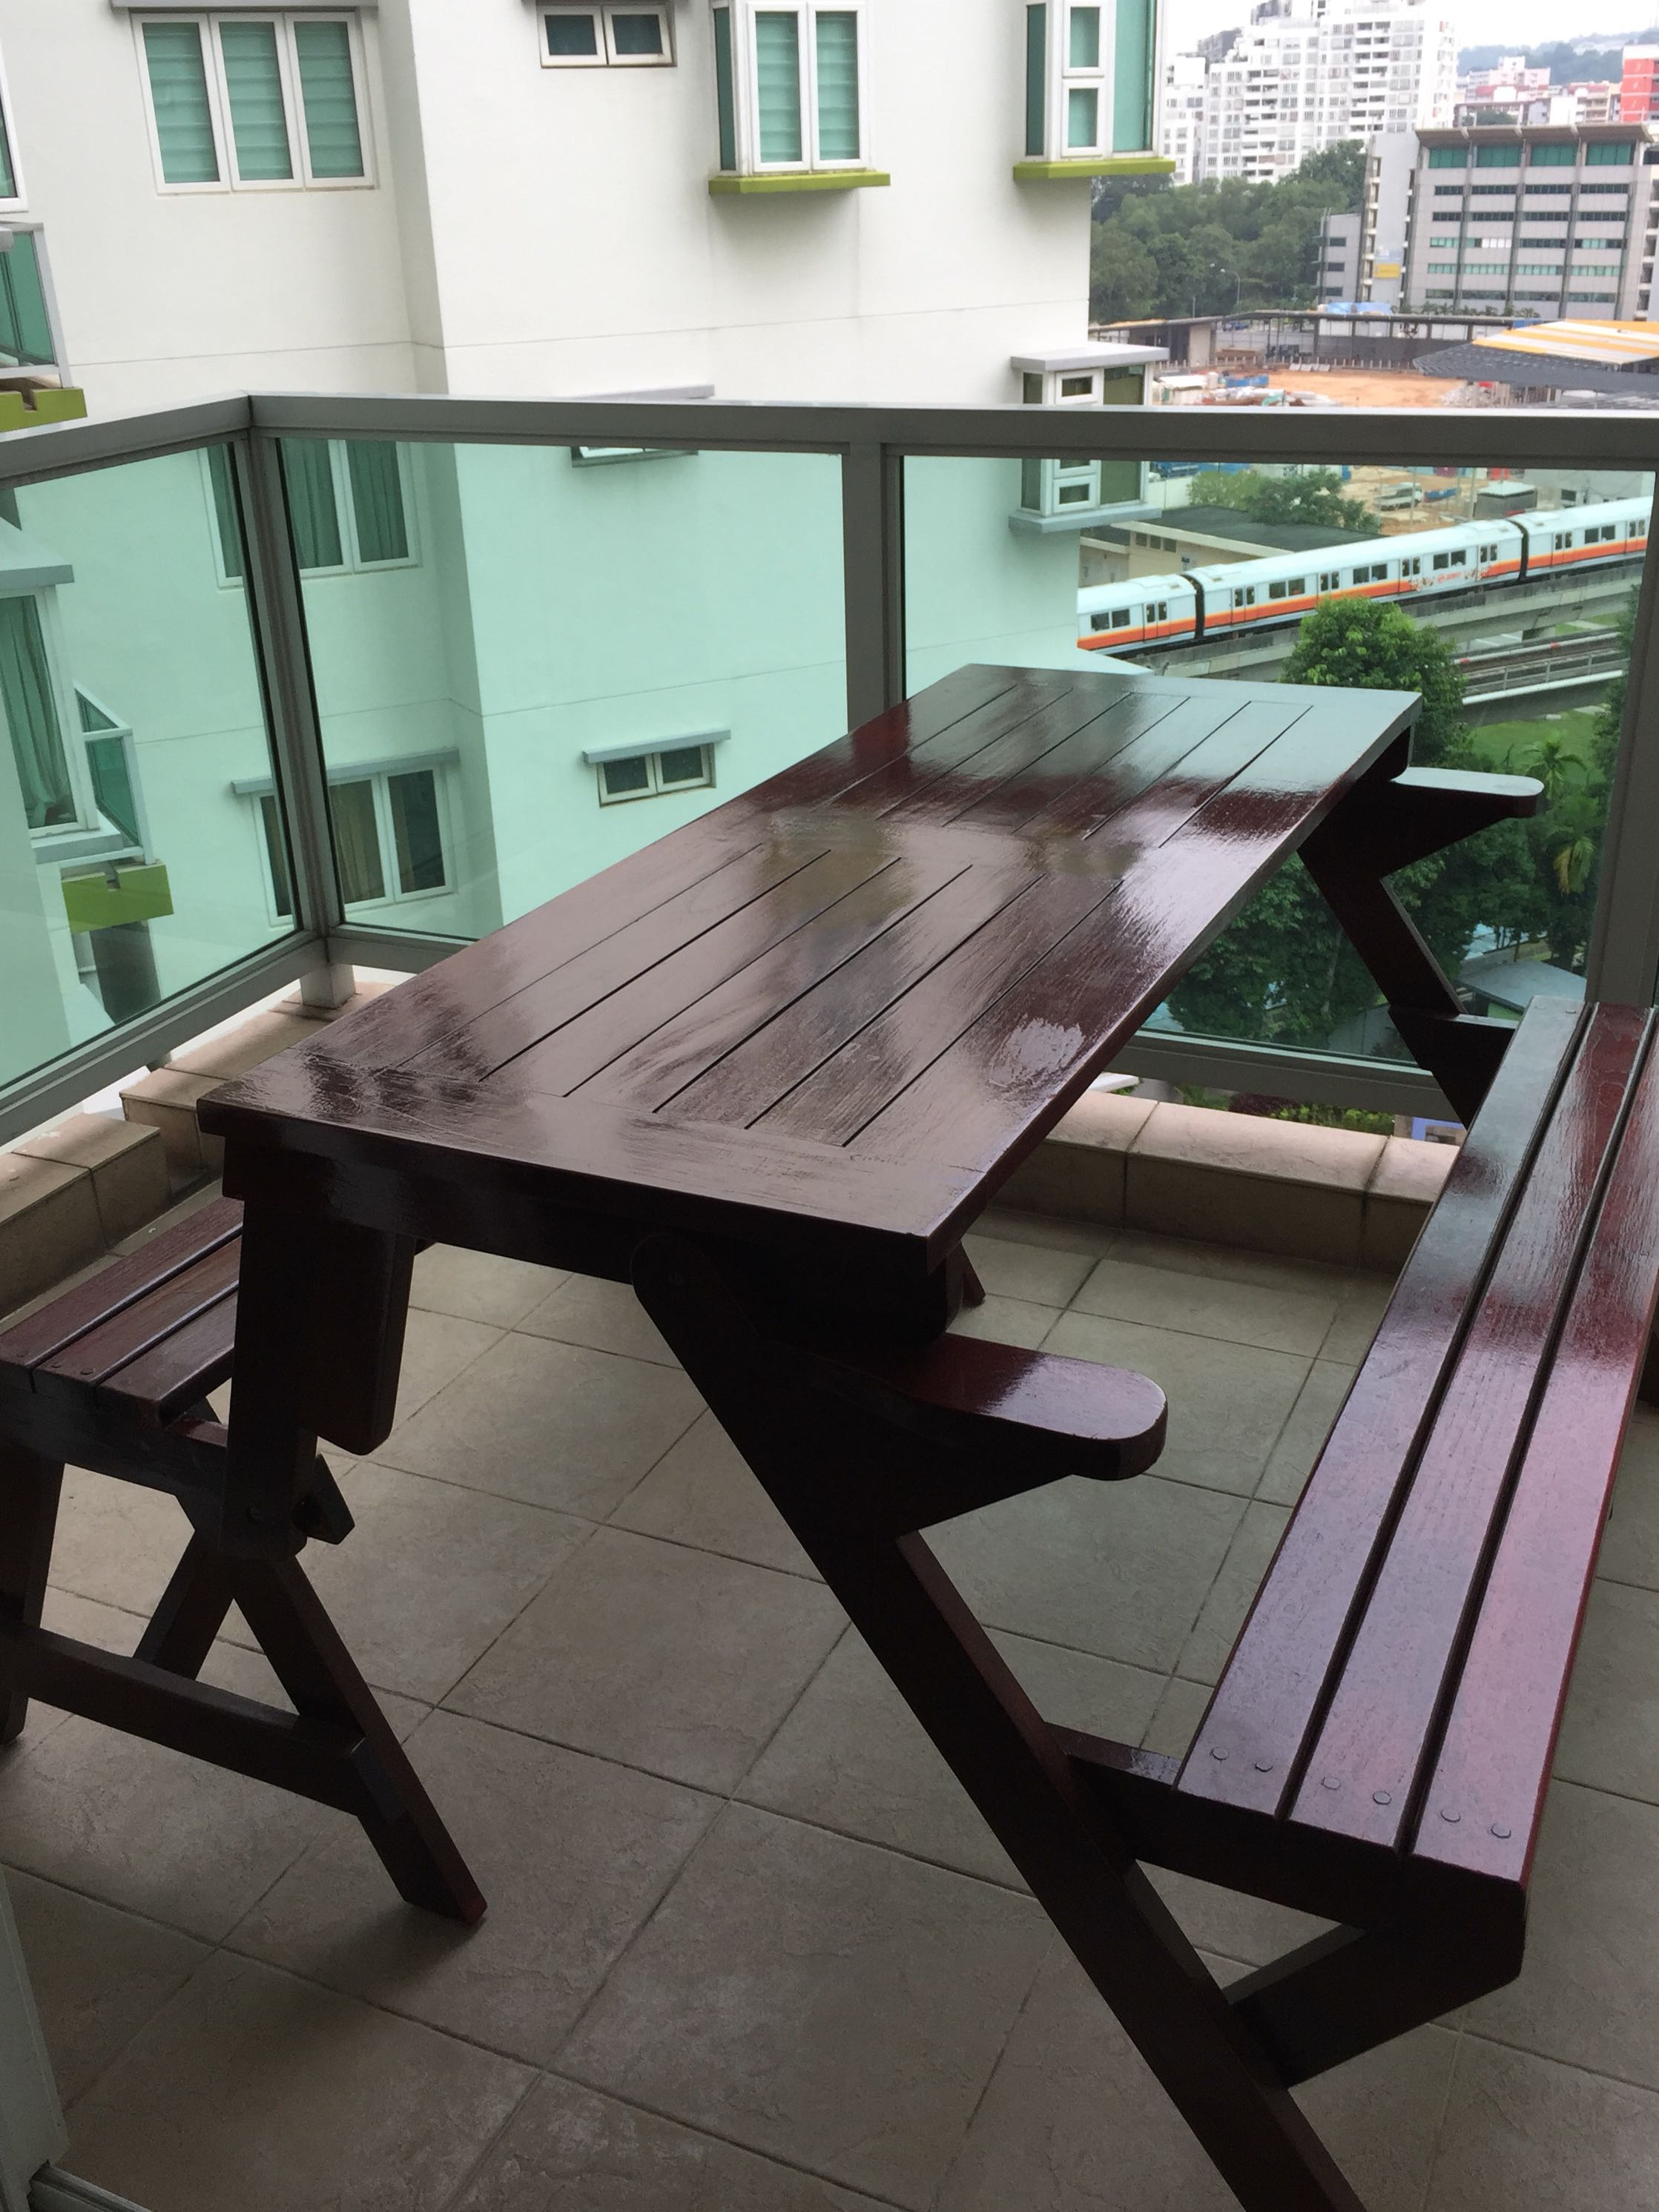 Wooden Bench Table Balcony Wooden Bench Table